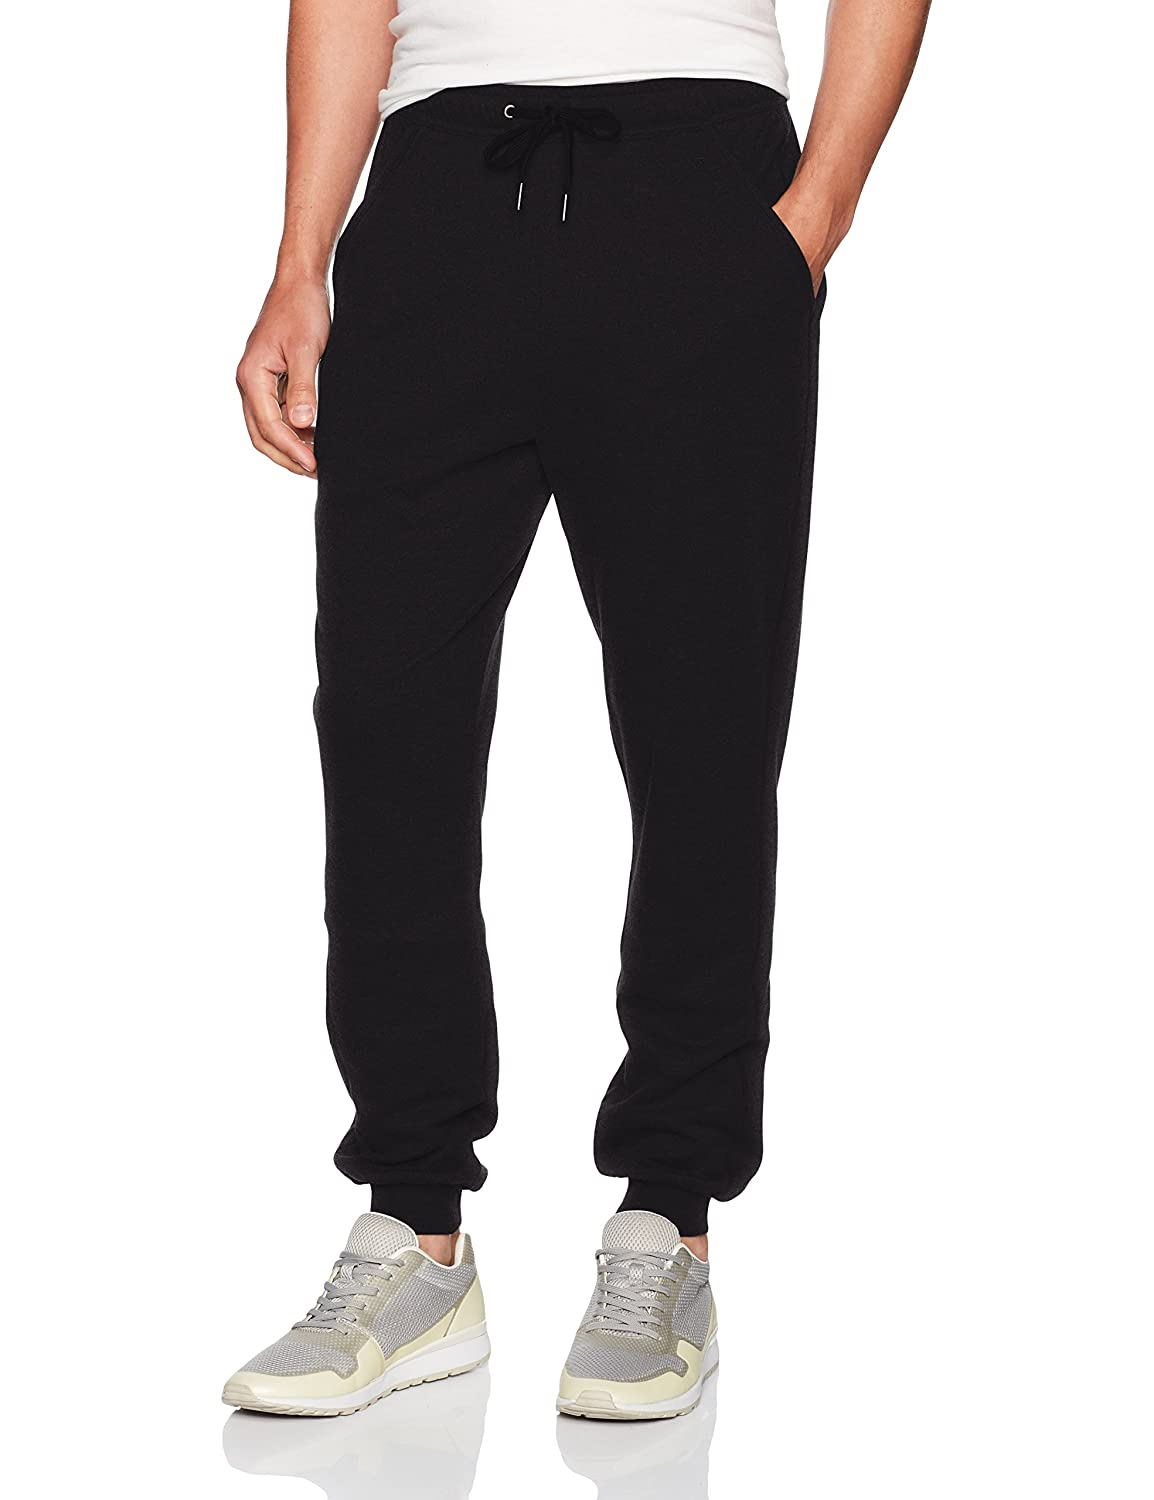 Haggar Men's Knit Lounge Banded Jogger HML7F426-R06